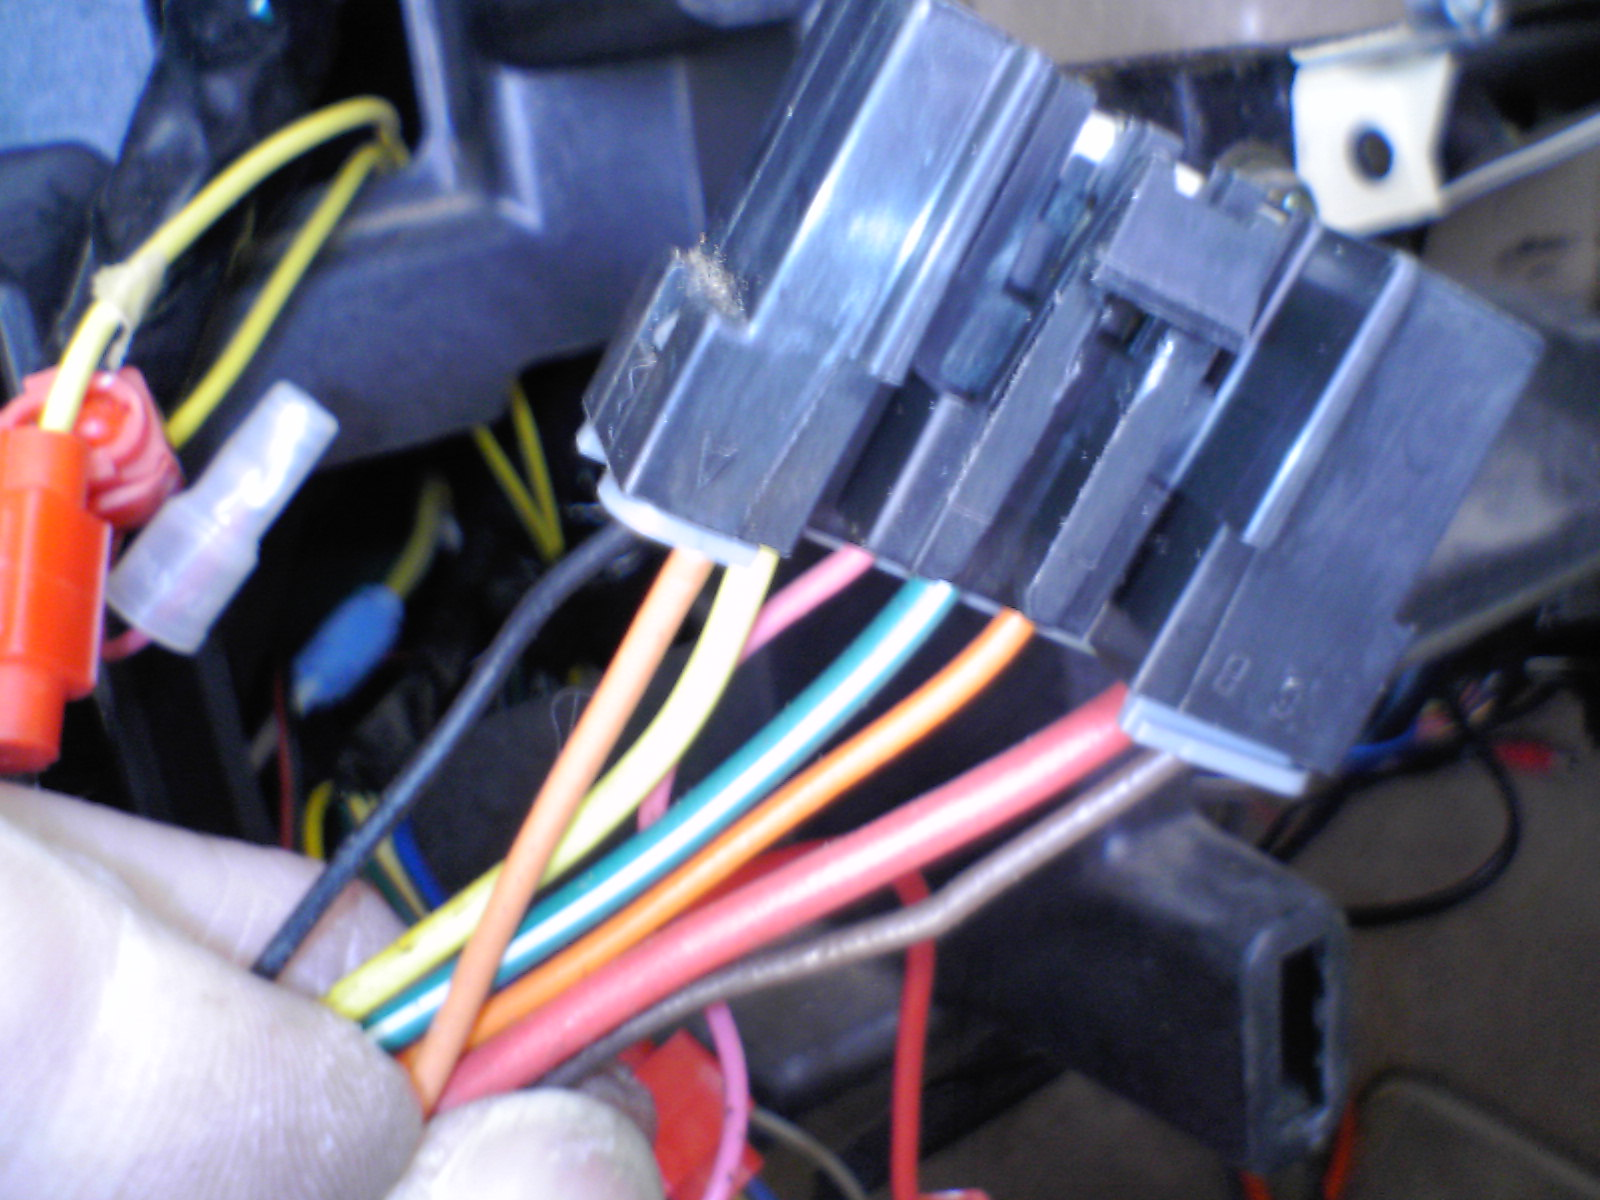 1995 Caprice Twilight Sentinel Install Was The Wiring I Salvaged From Previous Lamps Spliced Wire Black Switch Is Into Headlight Illumination Bulb Ground